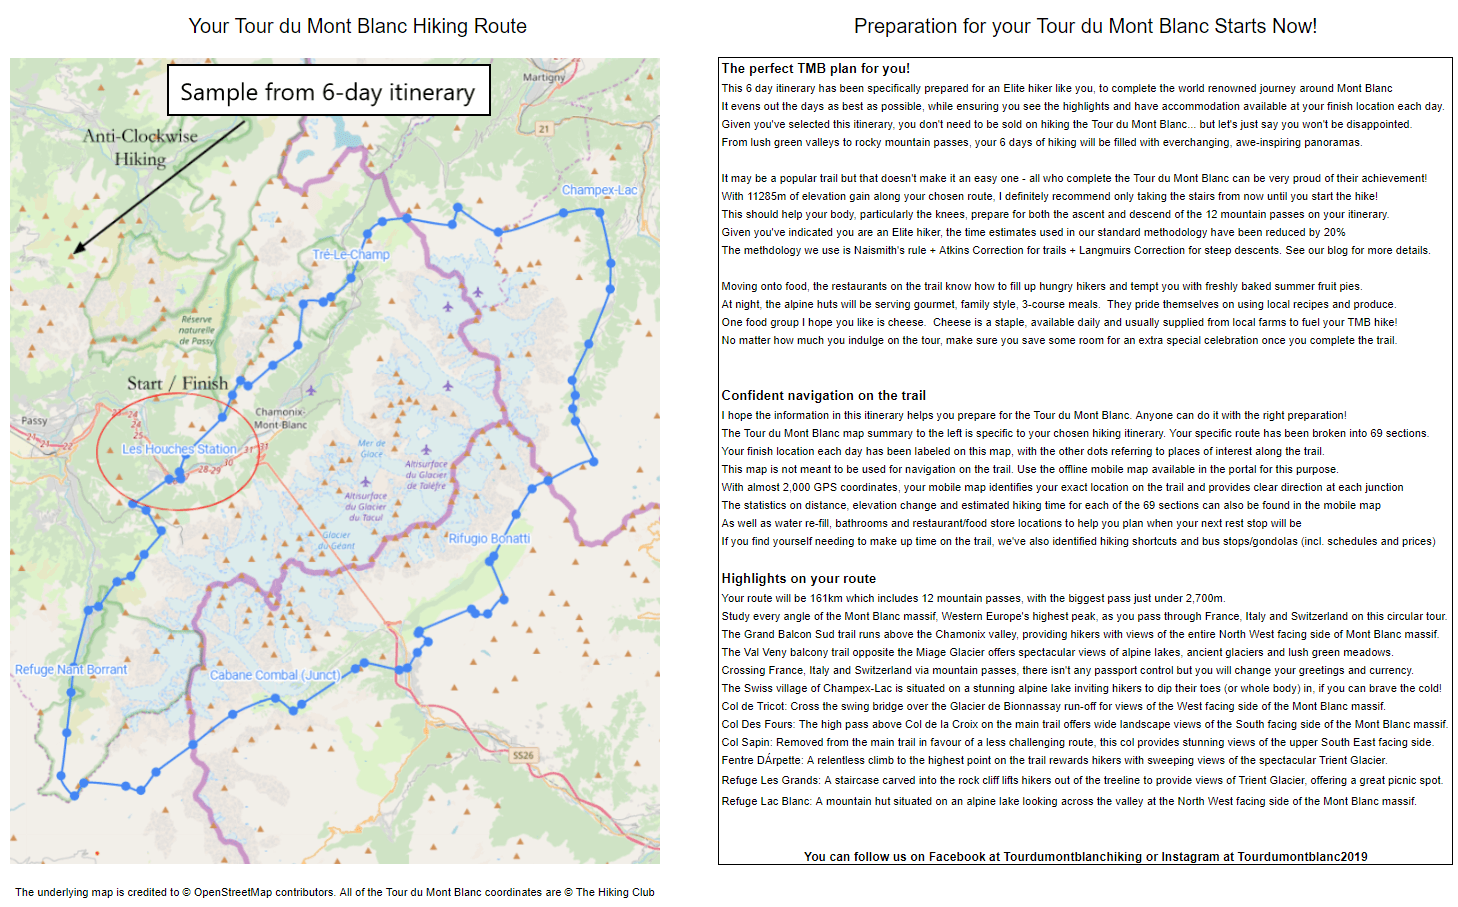 Tour du Mont Blanc sample map and highlights summary from the Elite self-guided 6-day All Highlights itinerary.